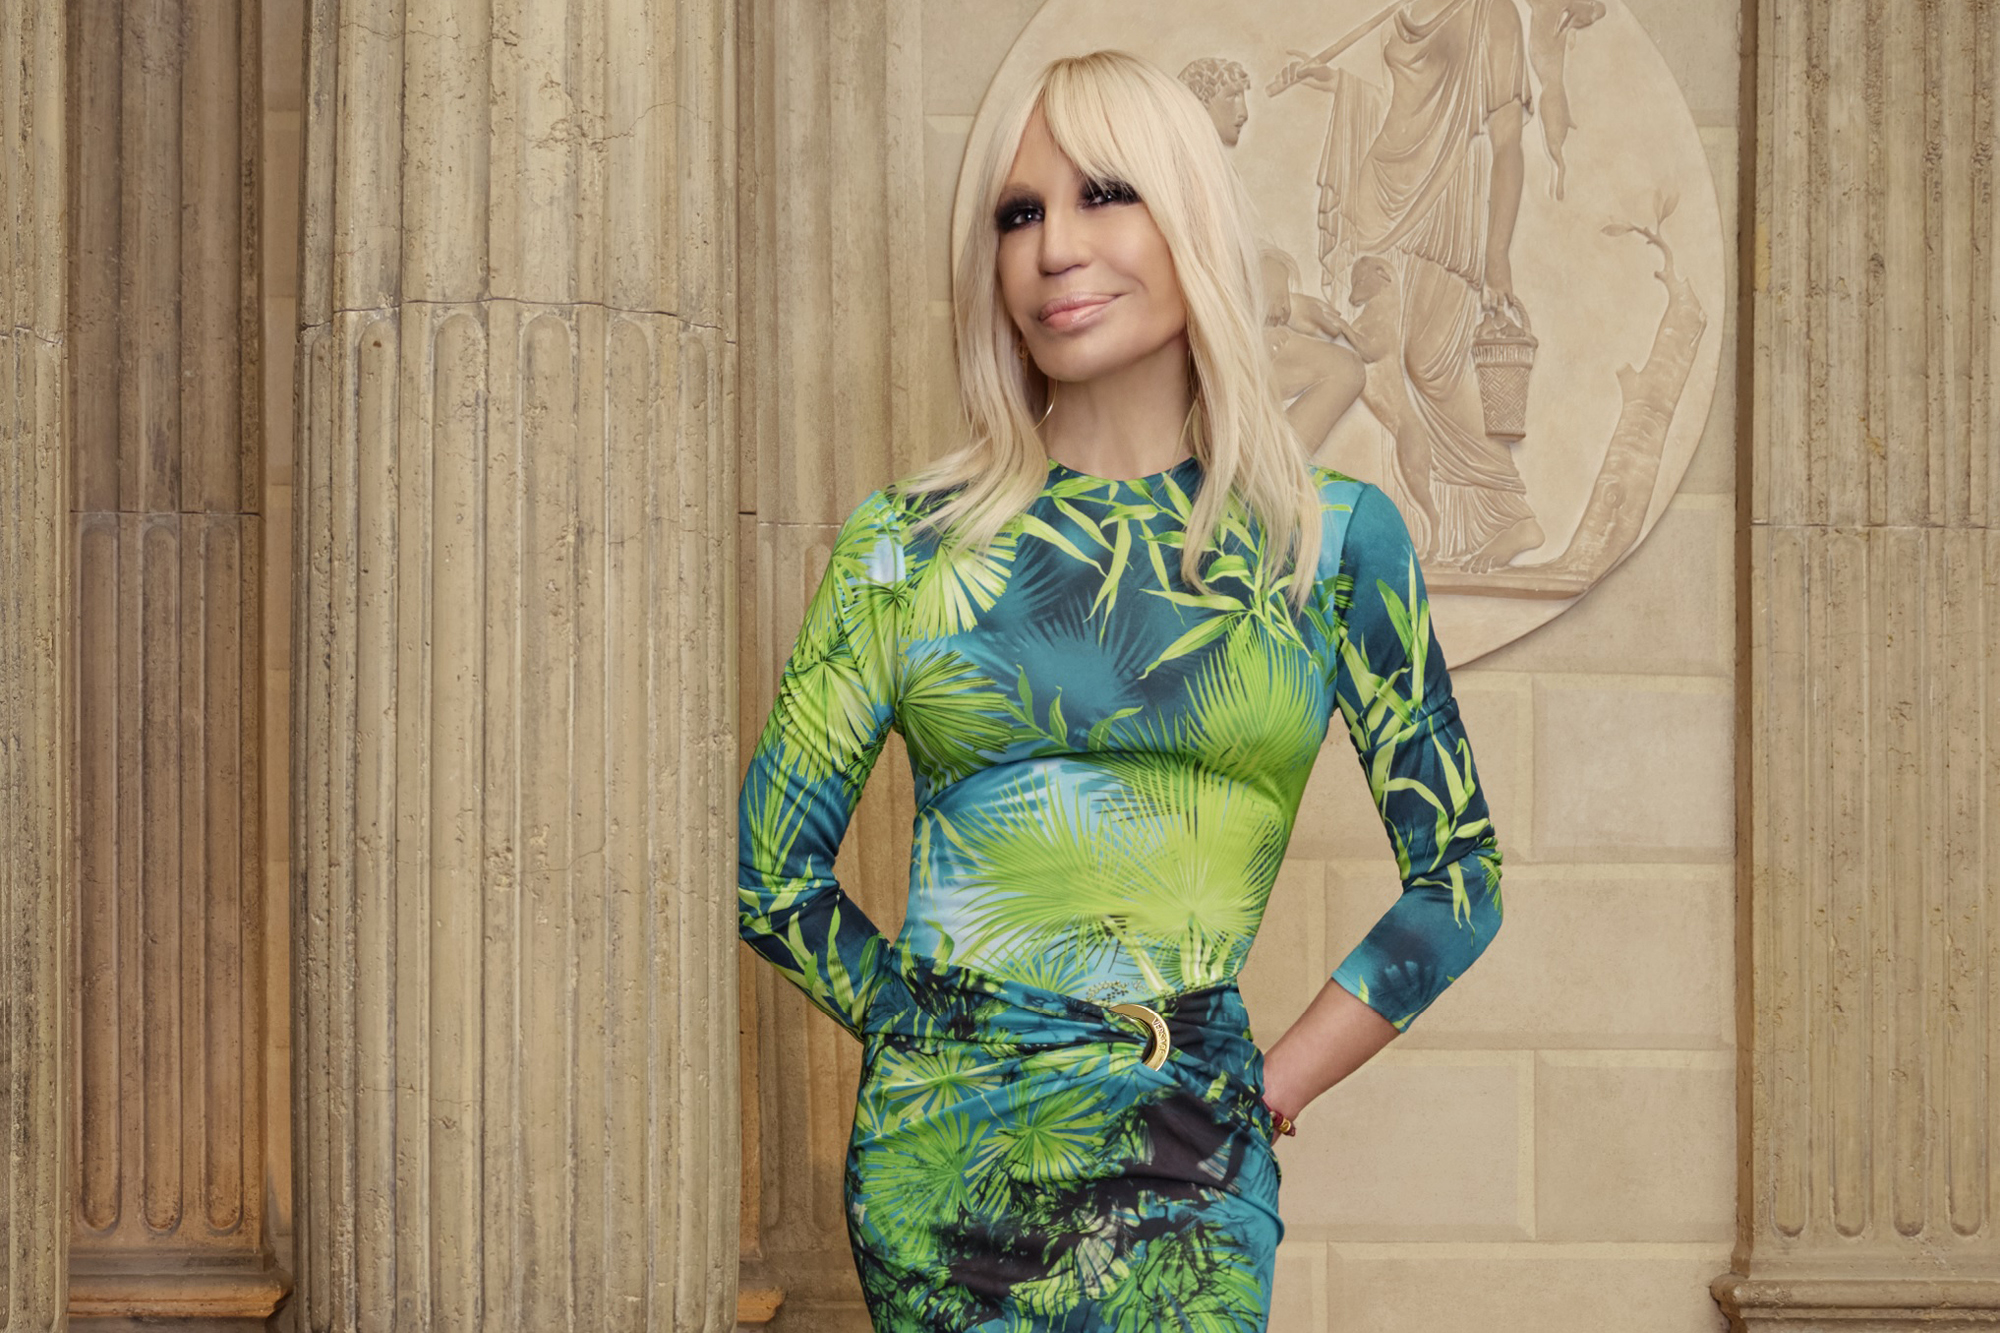 Peter Howarth's interview with Donatella Versace for Walpole